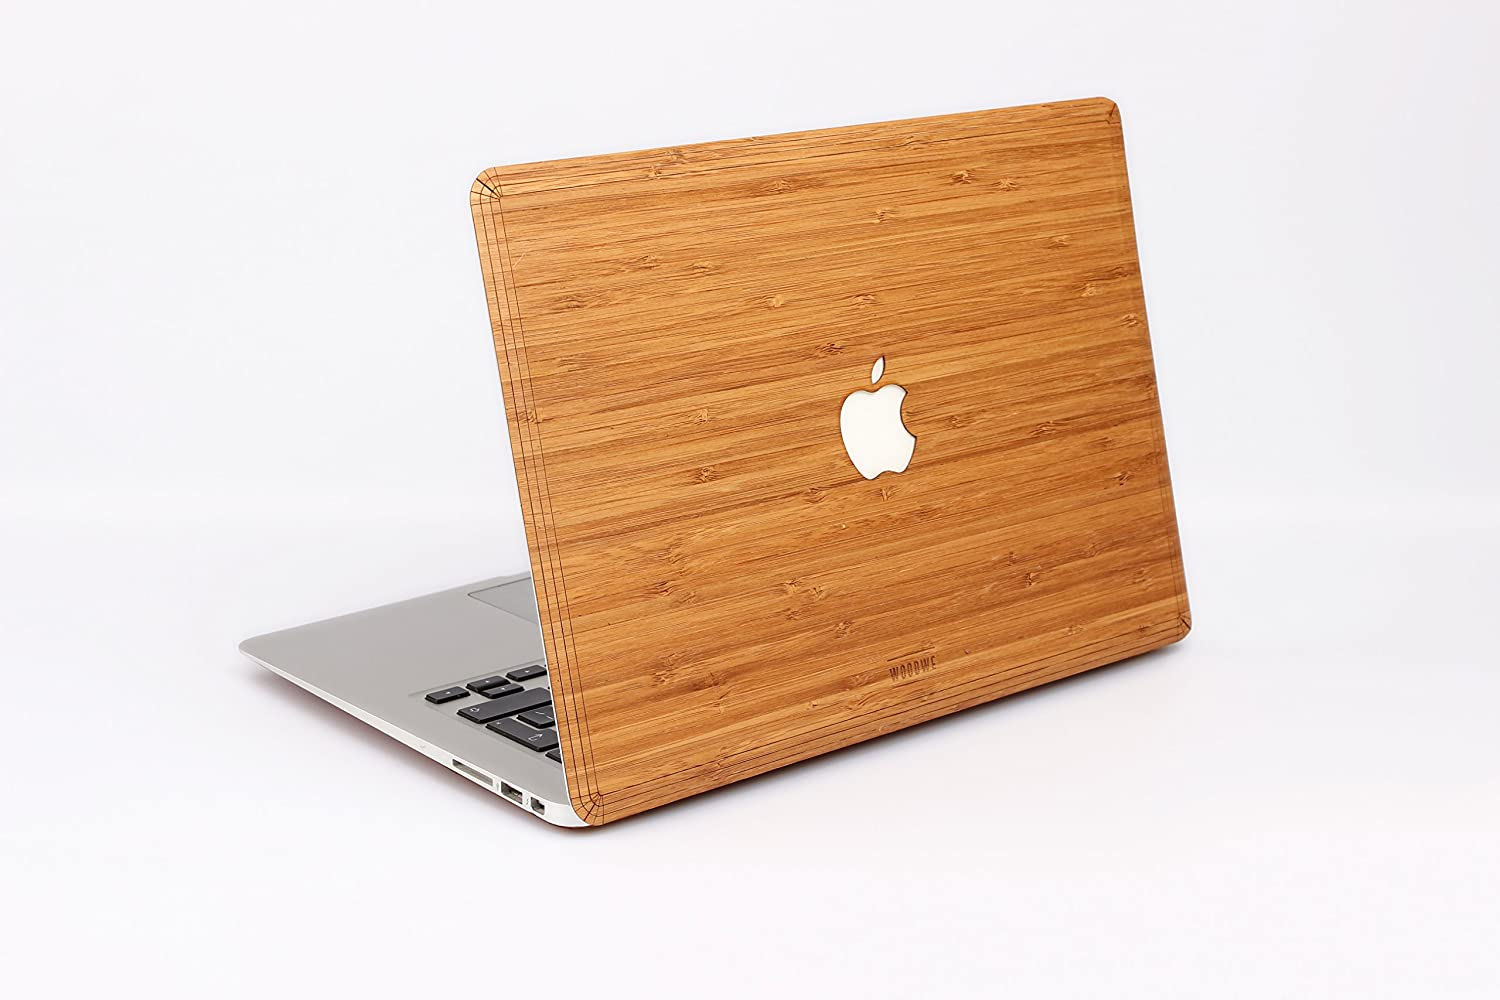 "WOODWE Real Wood Laptop Cover / Skin for Macbook pro 13"" inch Touch Bar Edition 